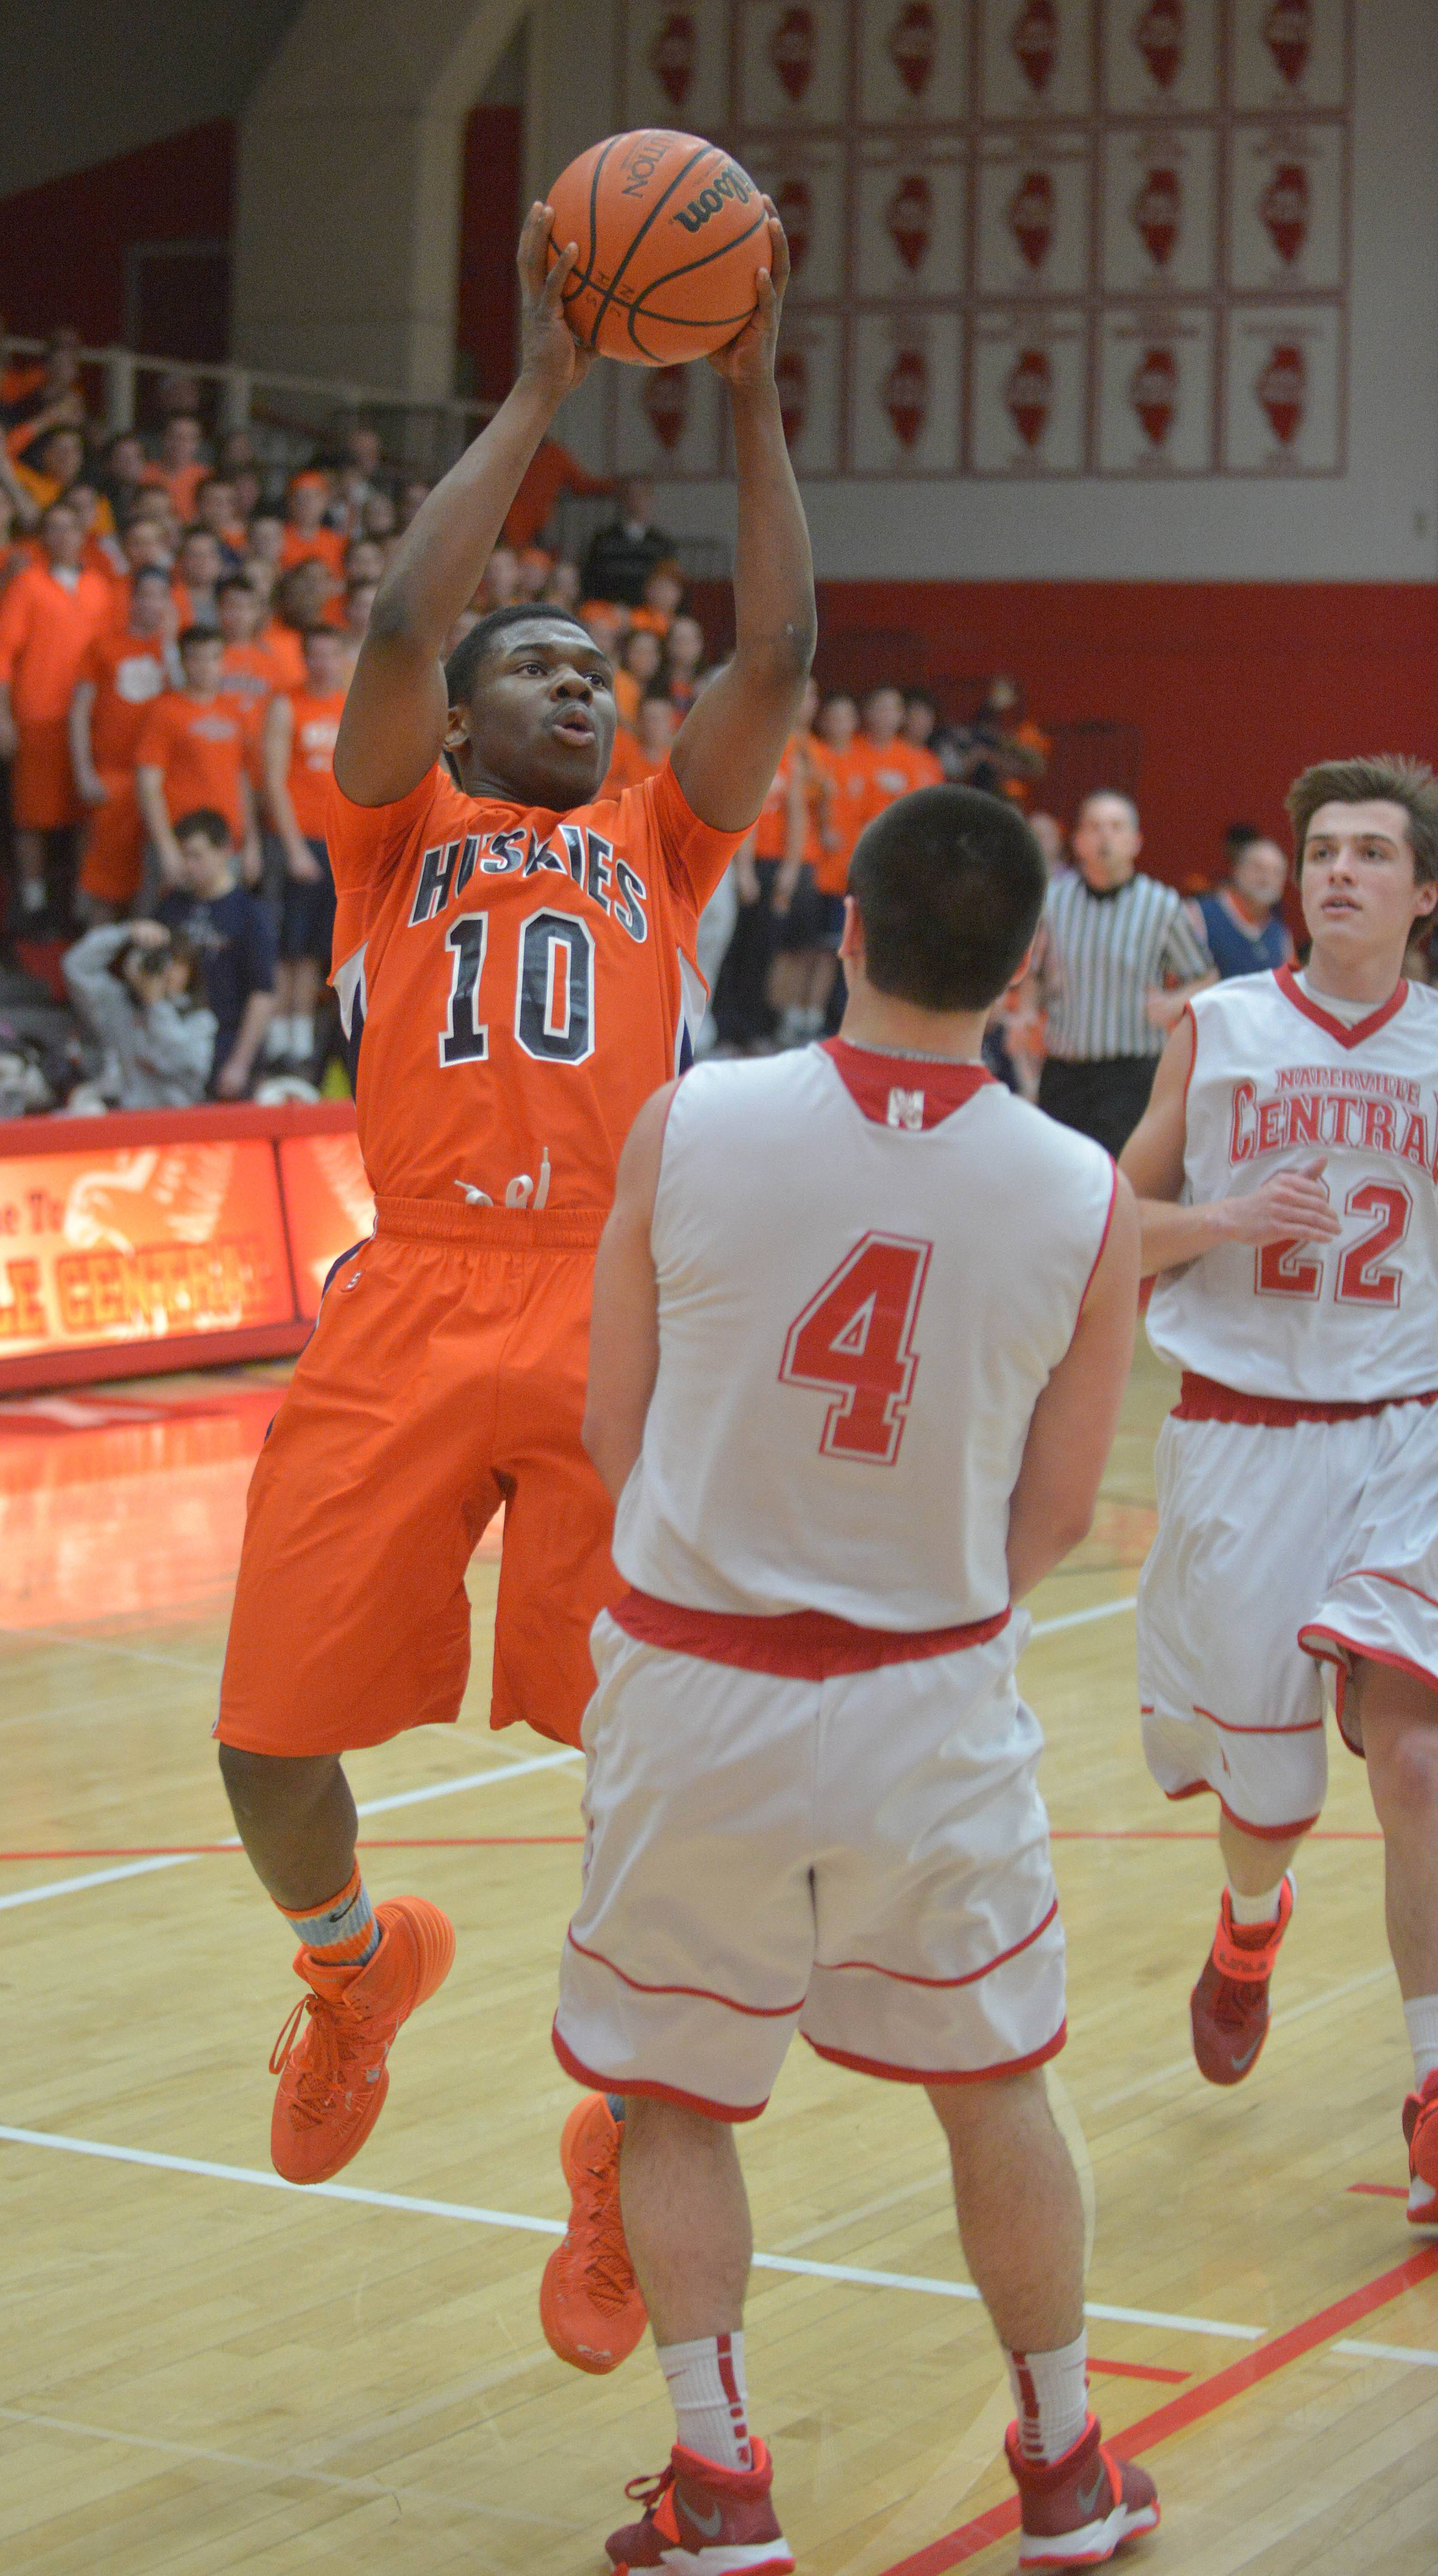 Naperville North spoils Naperville Central's party